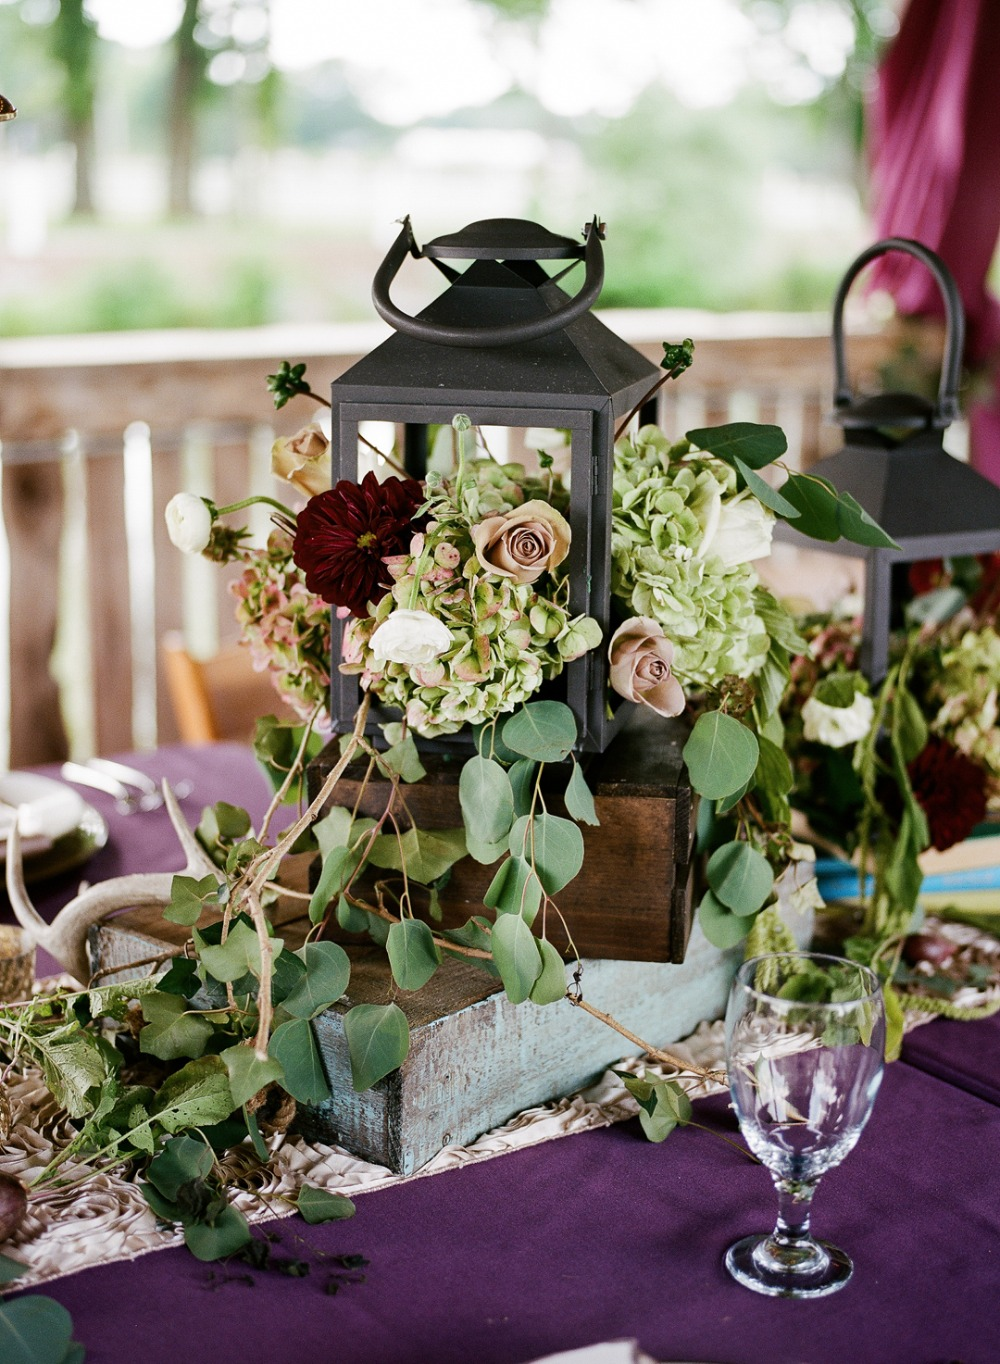 Gorgeous floral and lantern centerpiece